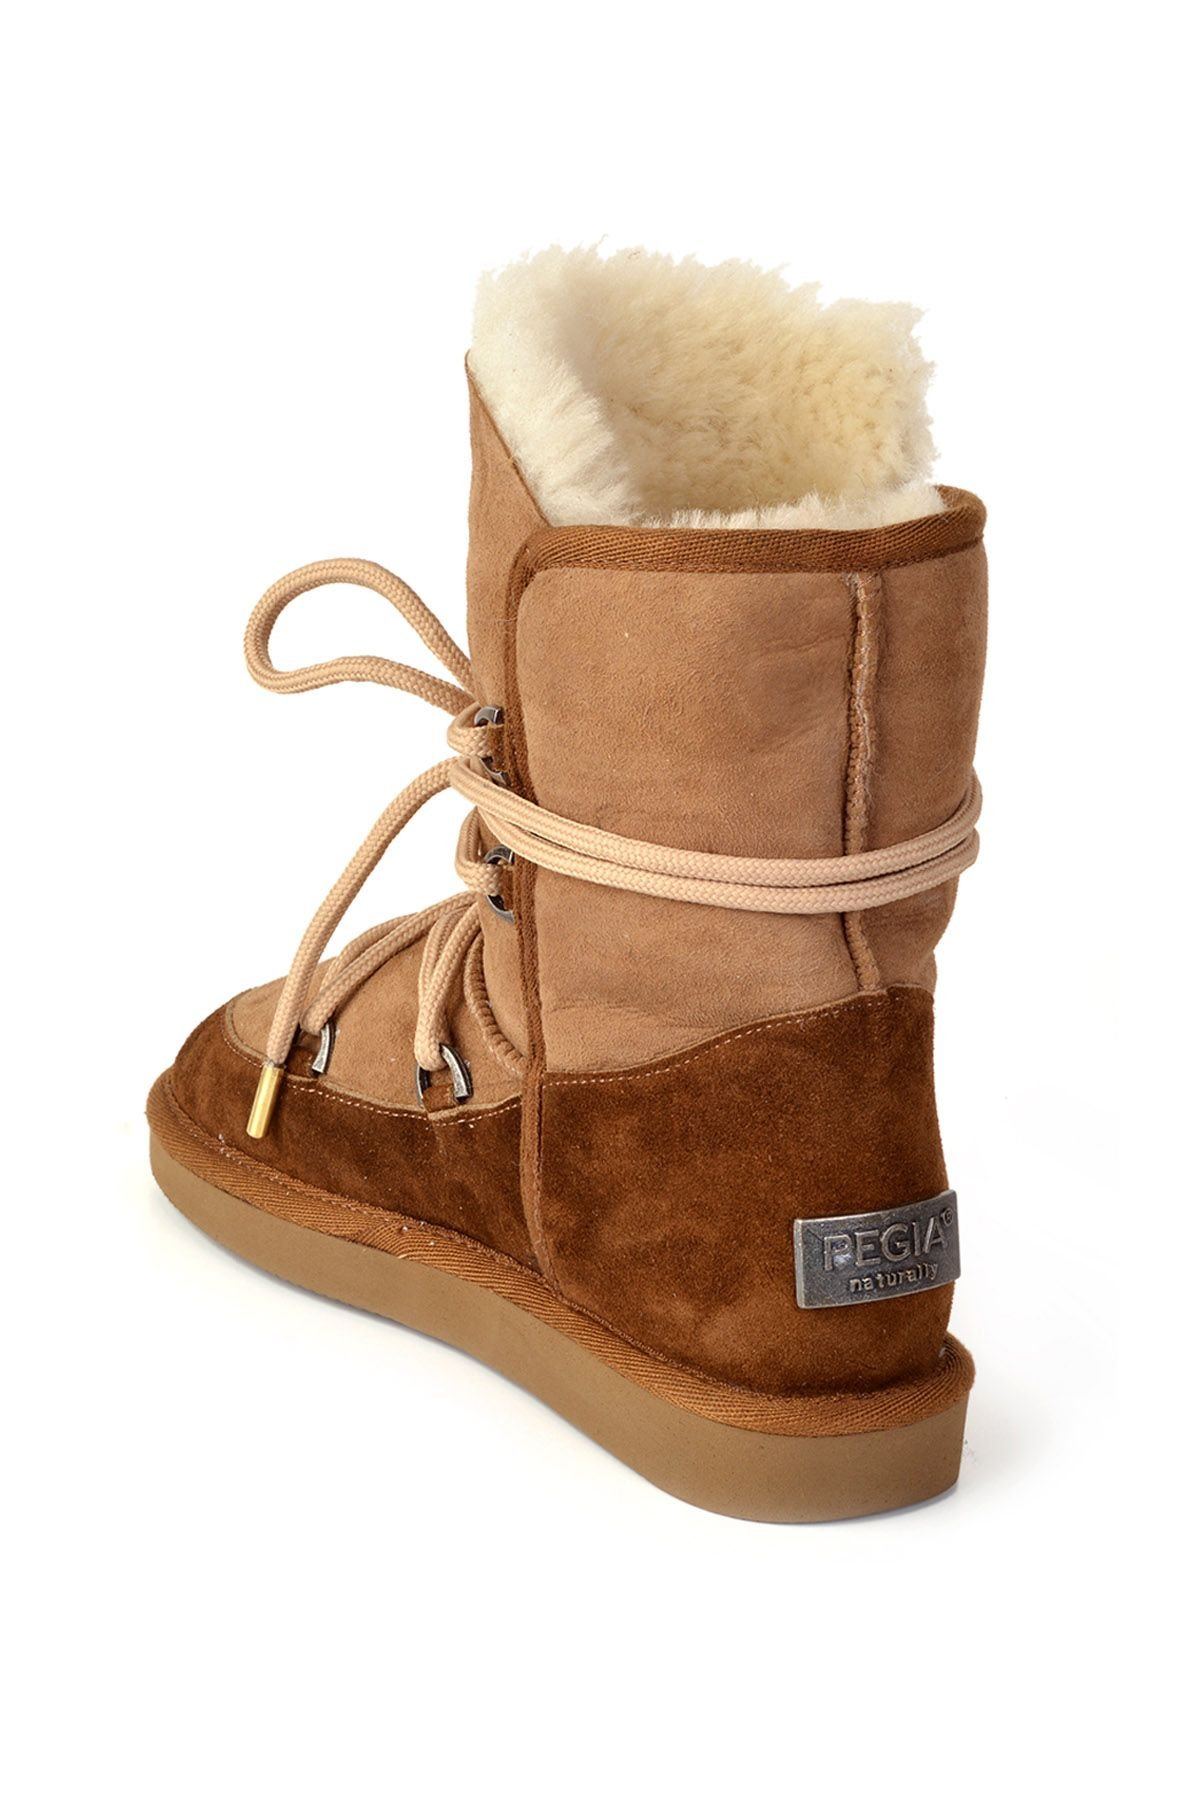 Pegia Laced Women Boots From Genuine Leather & Fur Sand-colored